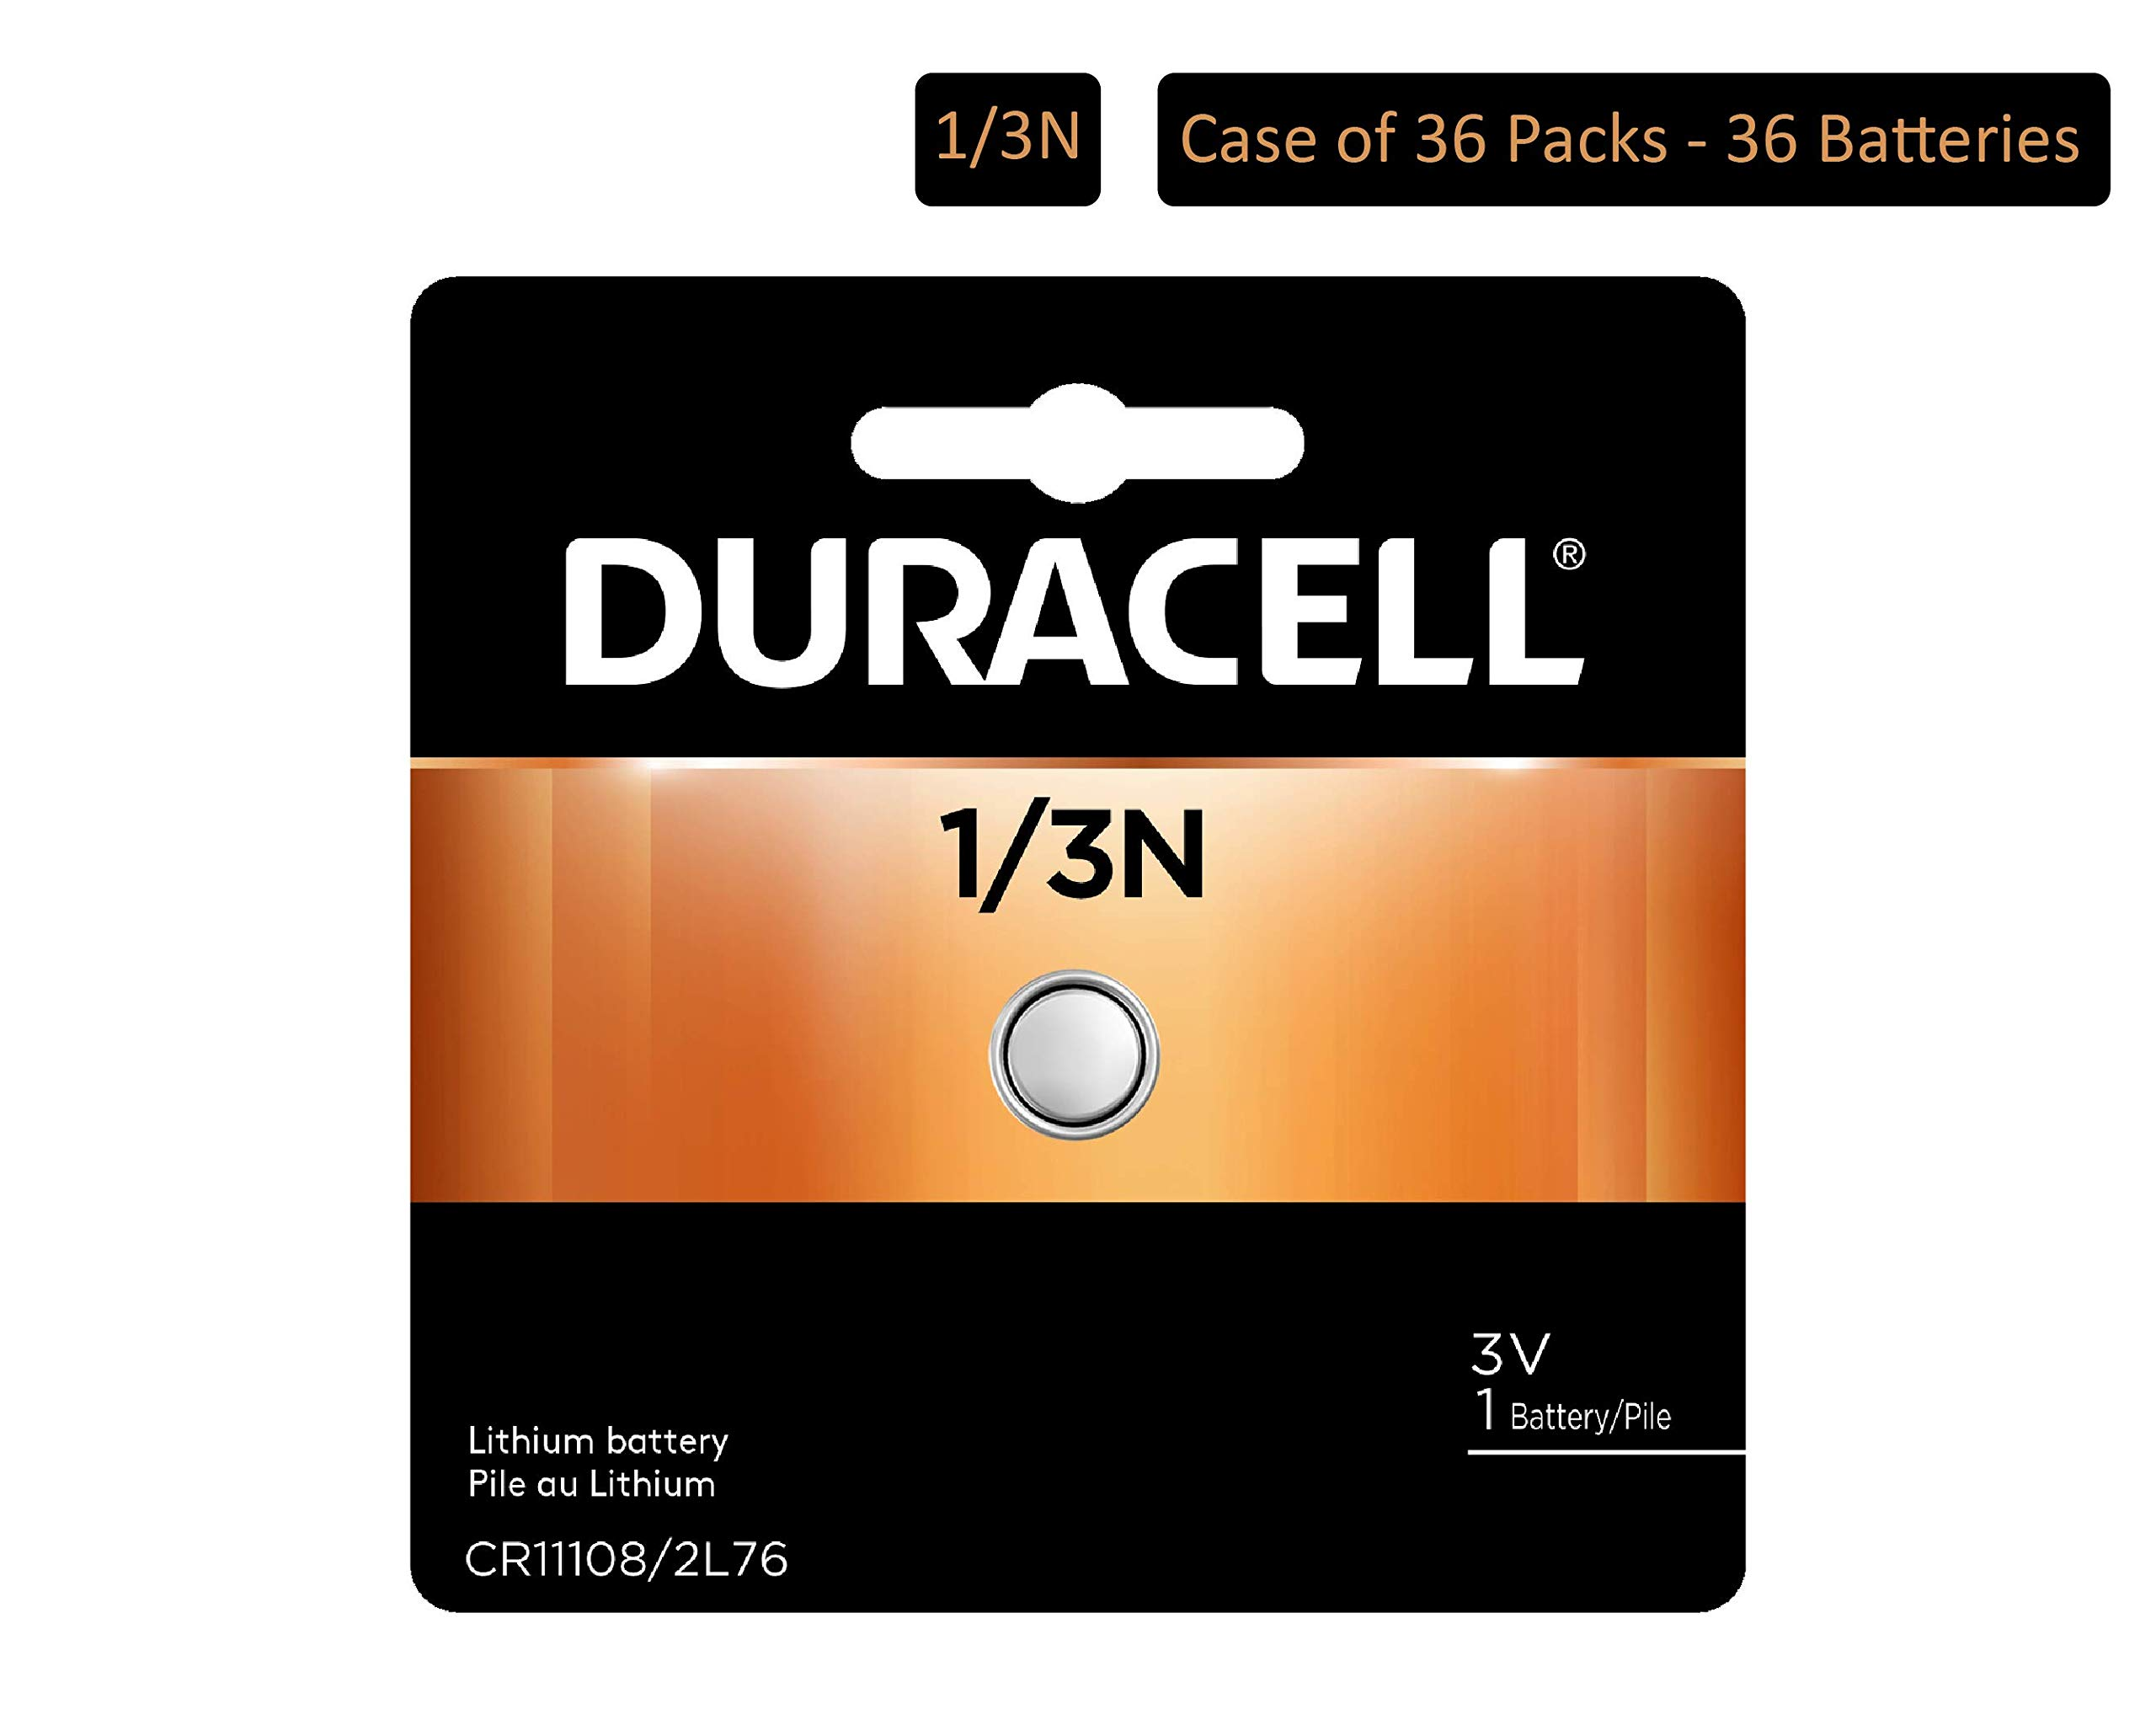 Duracell - 1/3N 3V Lithium Coin Photo Battery - long lasting battery - 1 count (Pack of 36)